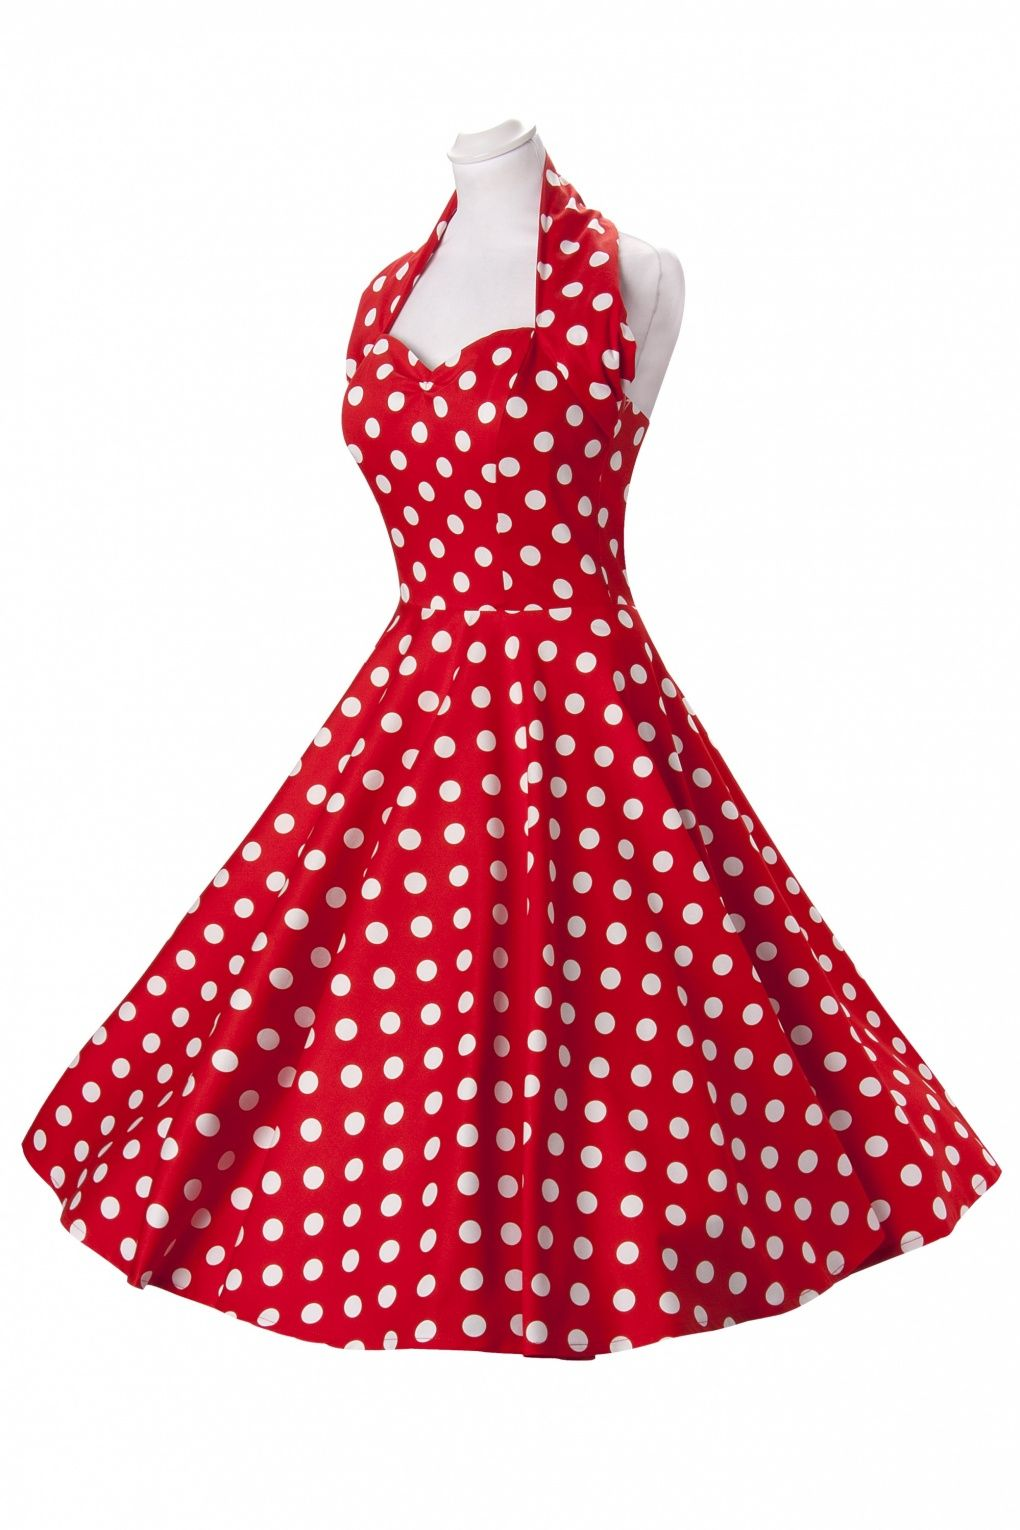 14s Retro halter Polka Dot Red White swing dress cotton sateen